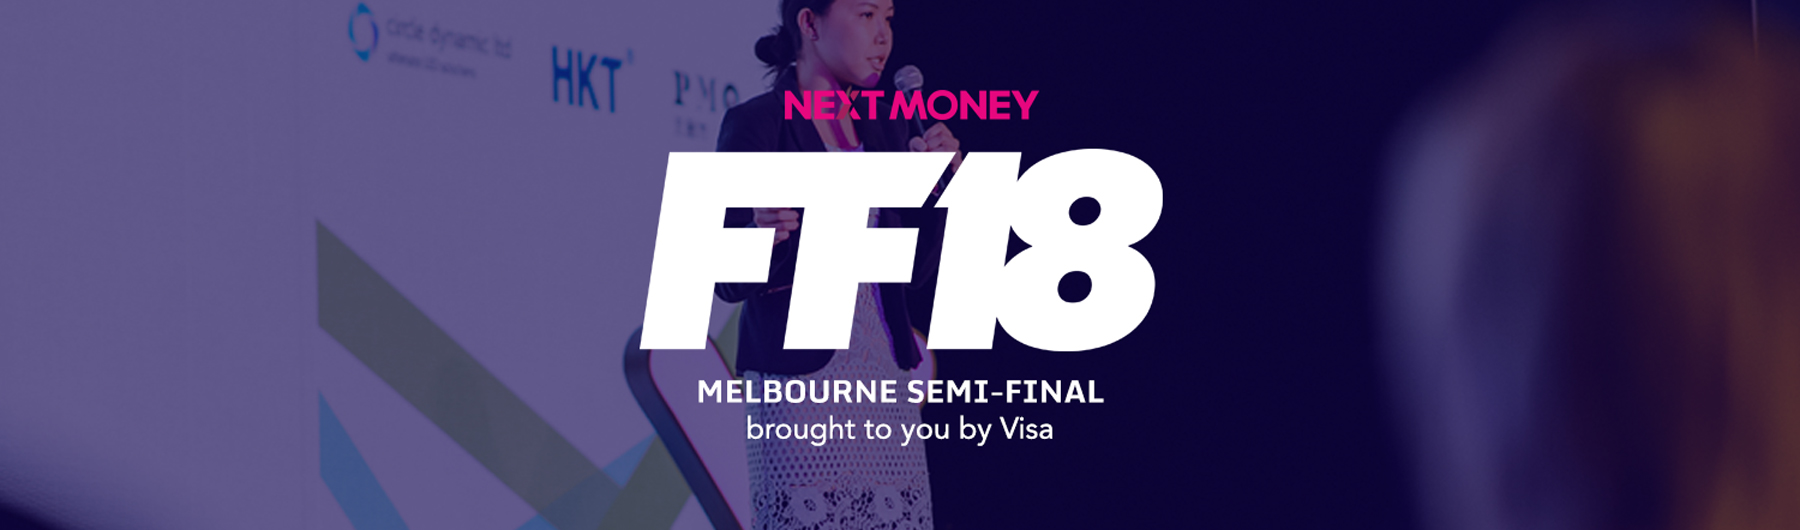 FF18 Melbourne Semi-Final Fintech Pitch Competition